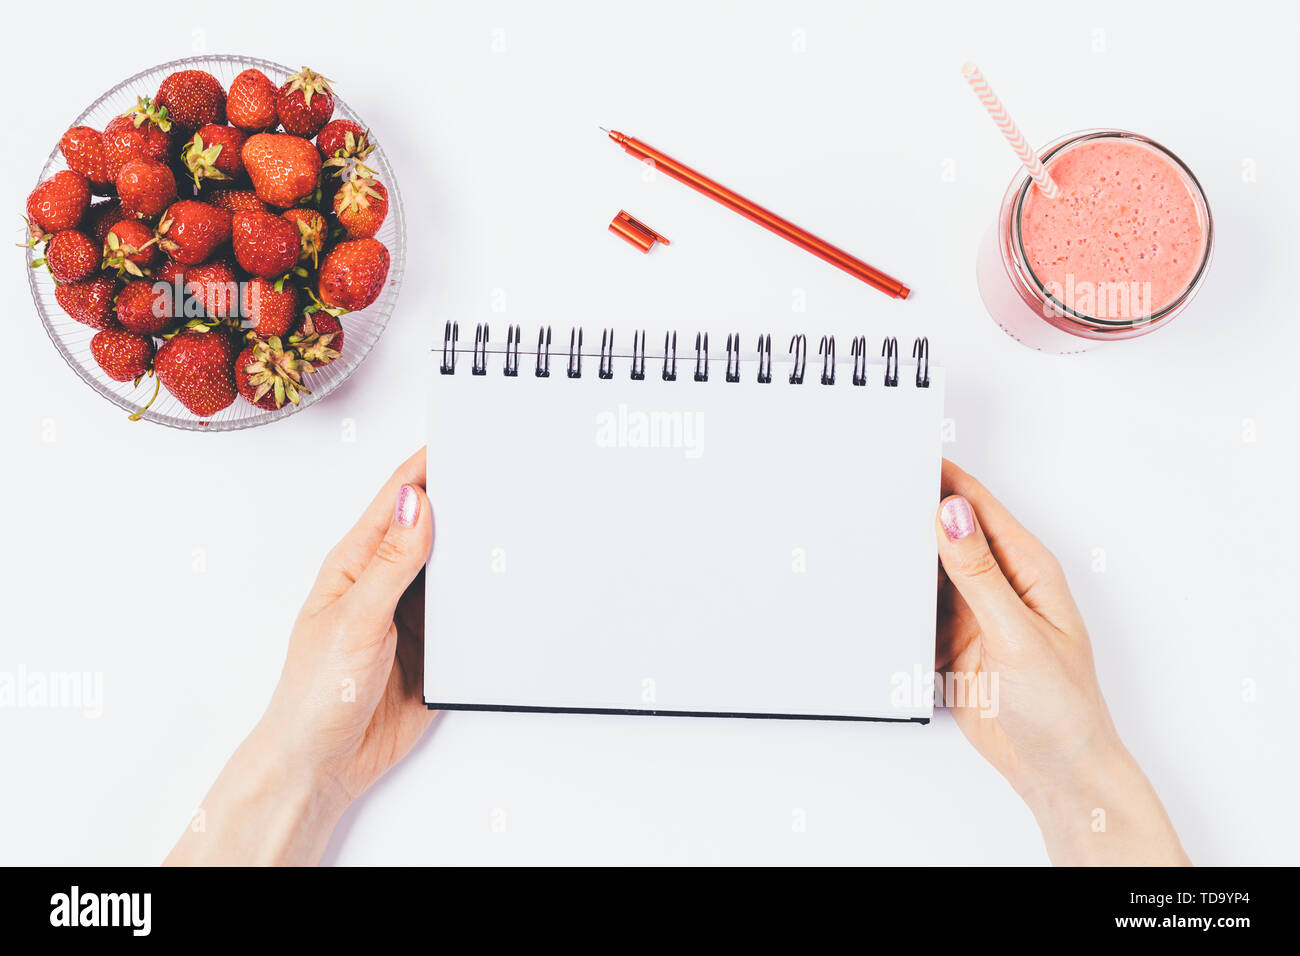 Flat lay arrangement of woman's hands holding empty notebook next to bowl of fresh strawberries and smoothie on white background, top view. - Stock Image